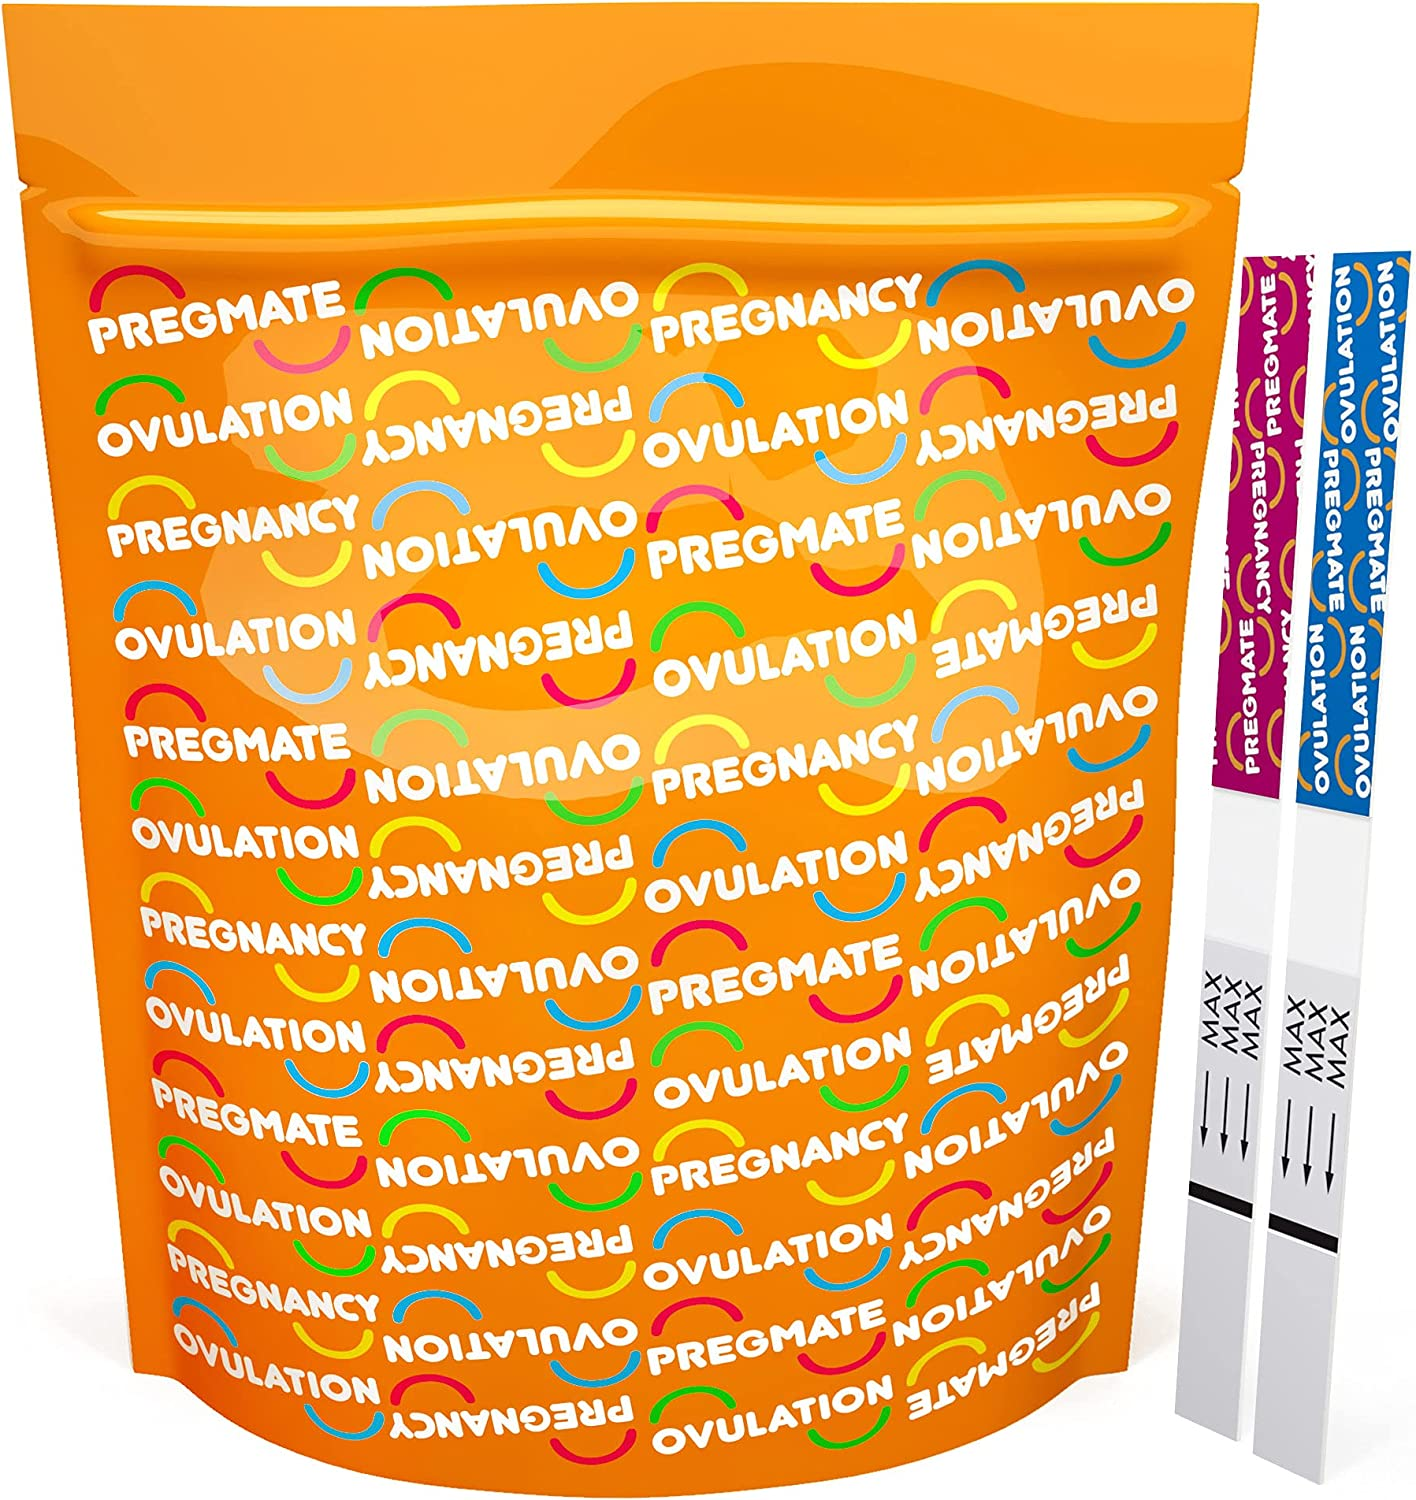 PREGMATE 60 Ovulation and 30 Pregnancy Test Strips Predictor Kit